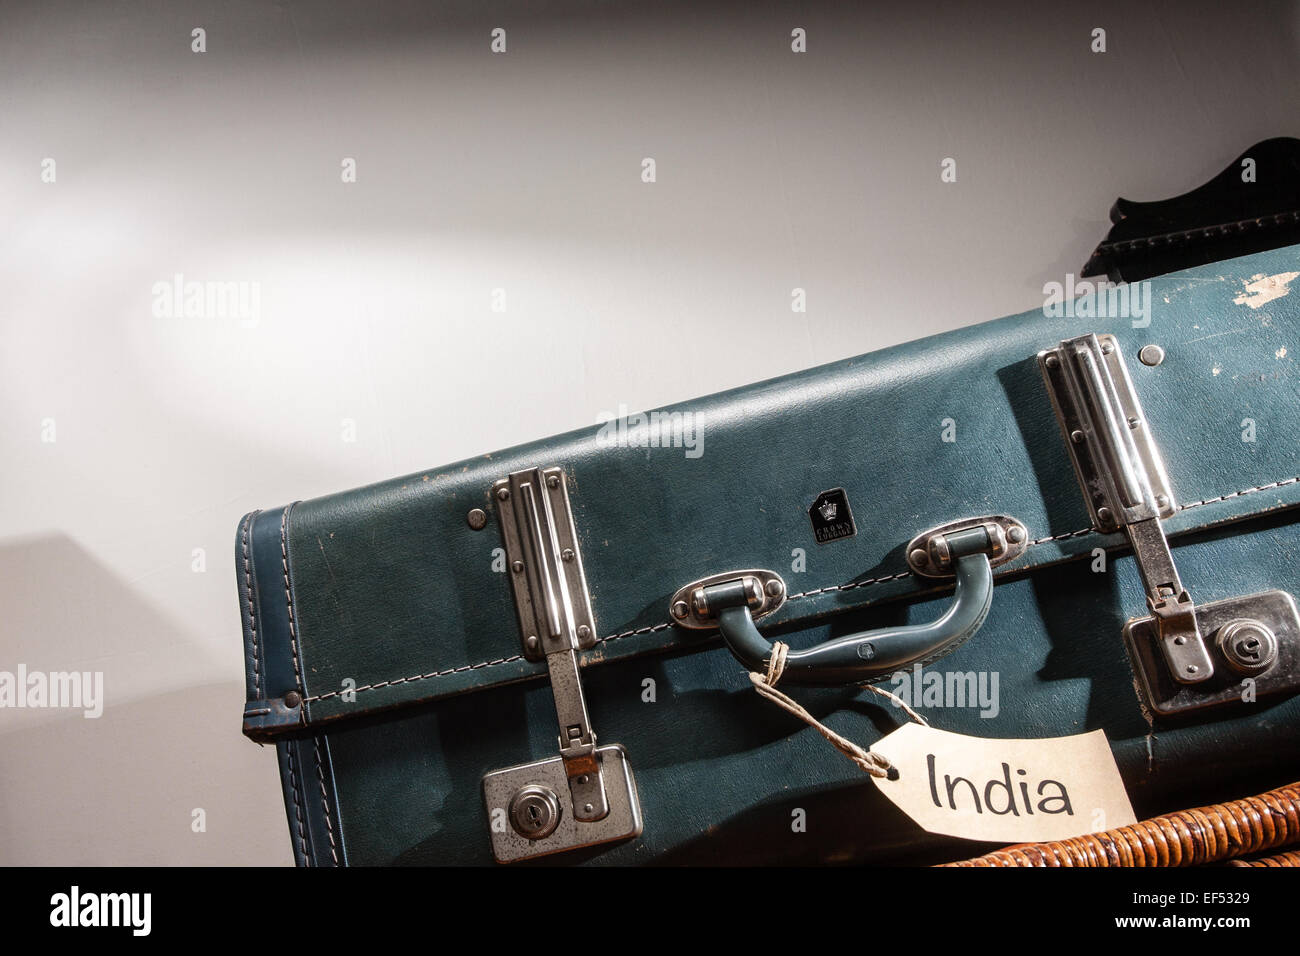 Vintage suitcase with India luggage tag Stock Photo, Royalty Free ...